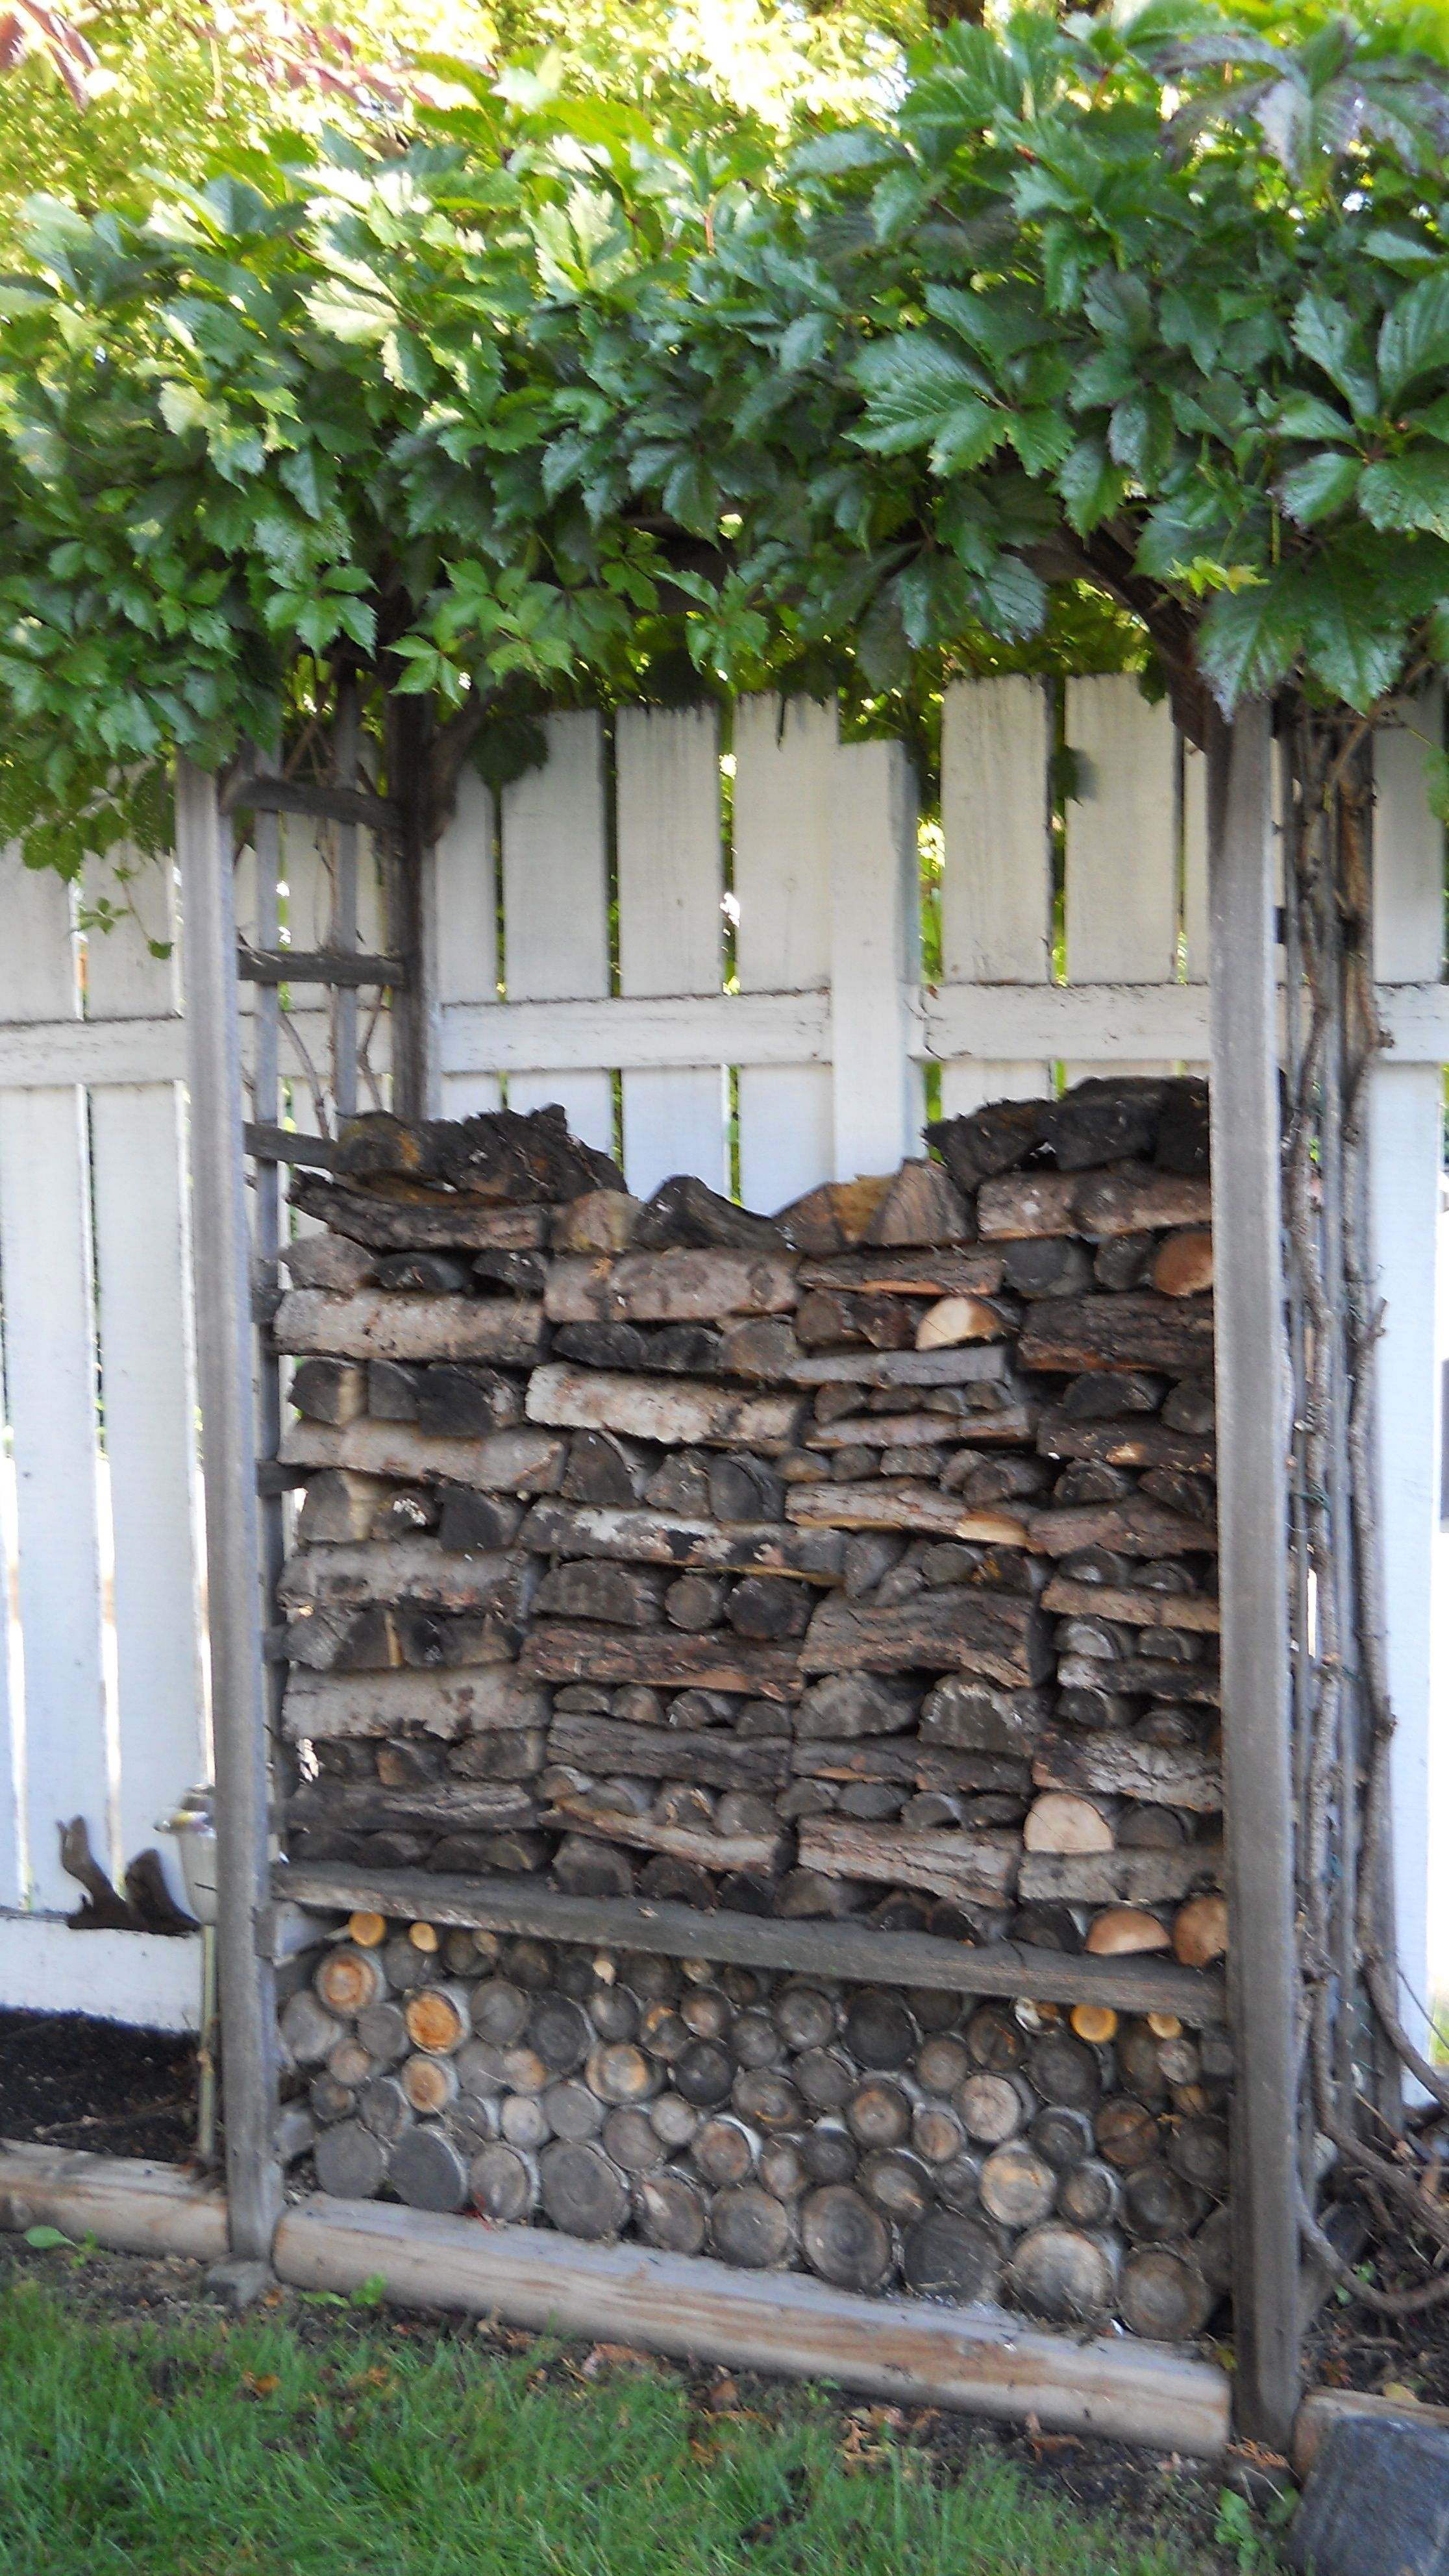 Outdoor Firewood Storage Containers Wood Pile Firewood Wood Stoves And Fireplaces Wood